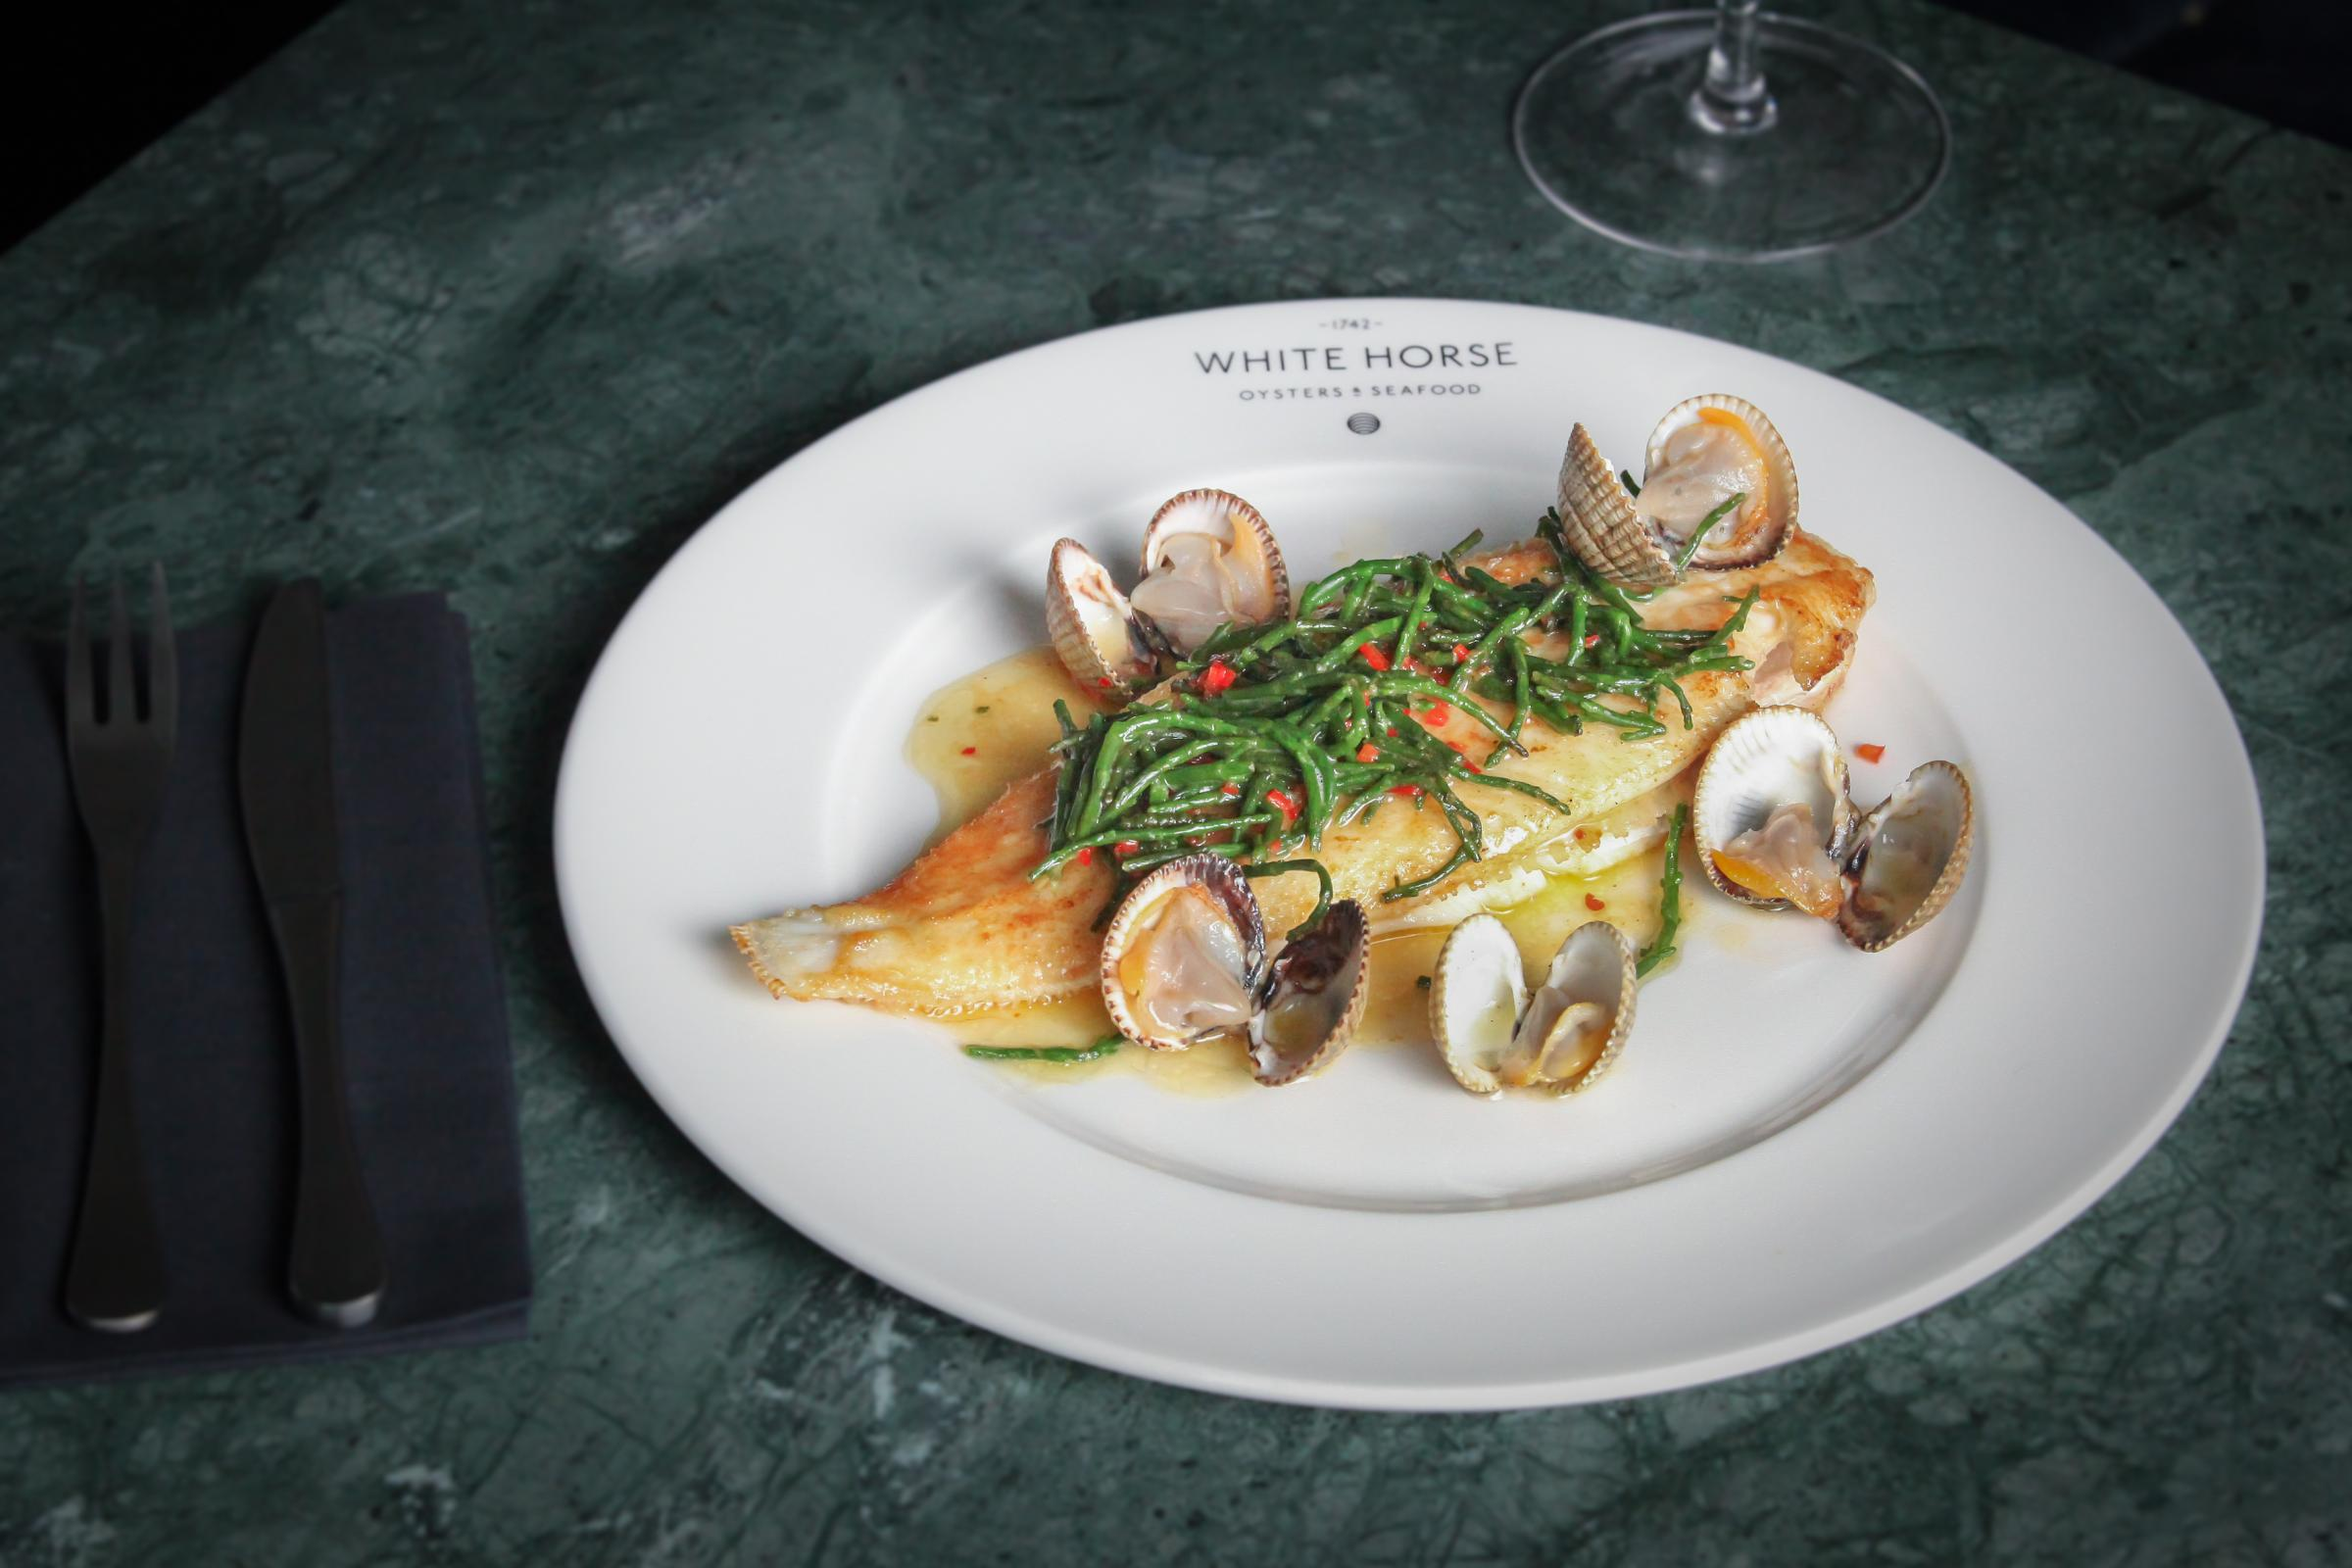 Recipe of the Day: Whole Lemon Sole with Chilli, Samphire and Clams by White Horse Oyster & Seafood Bar in Edinburgh